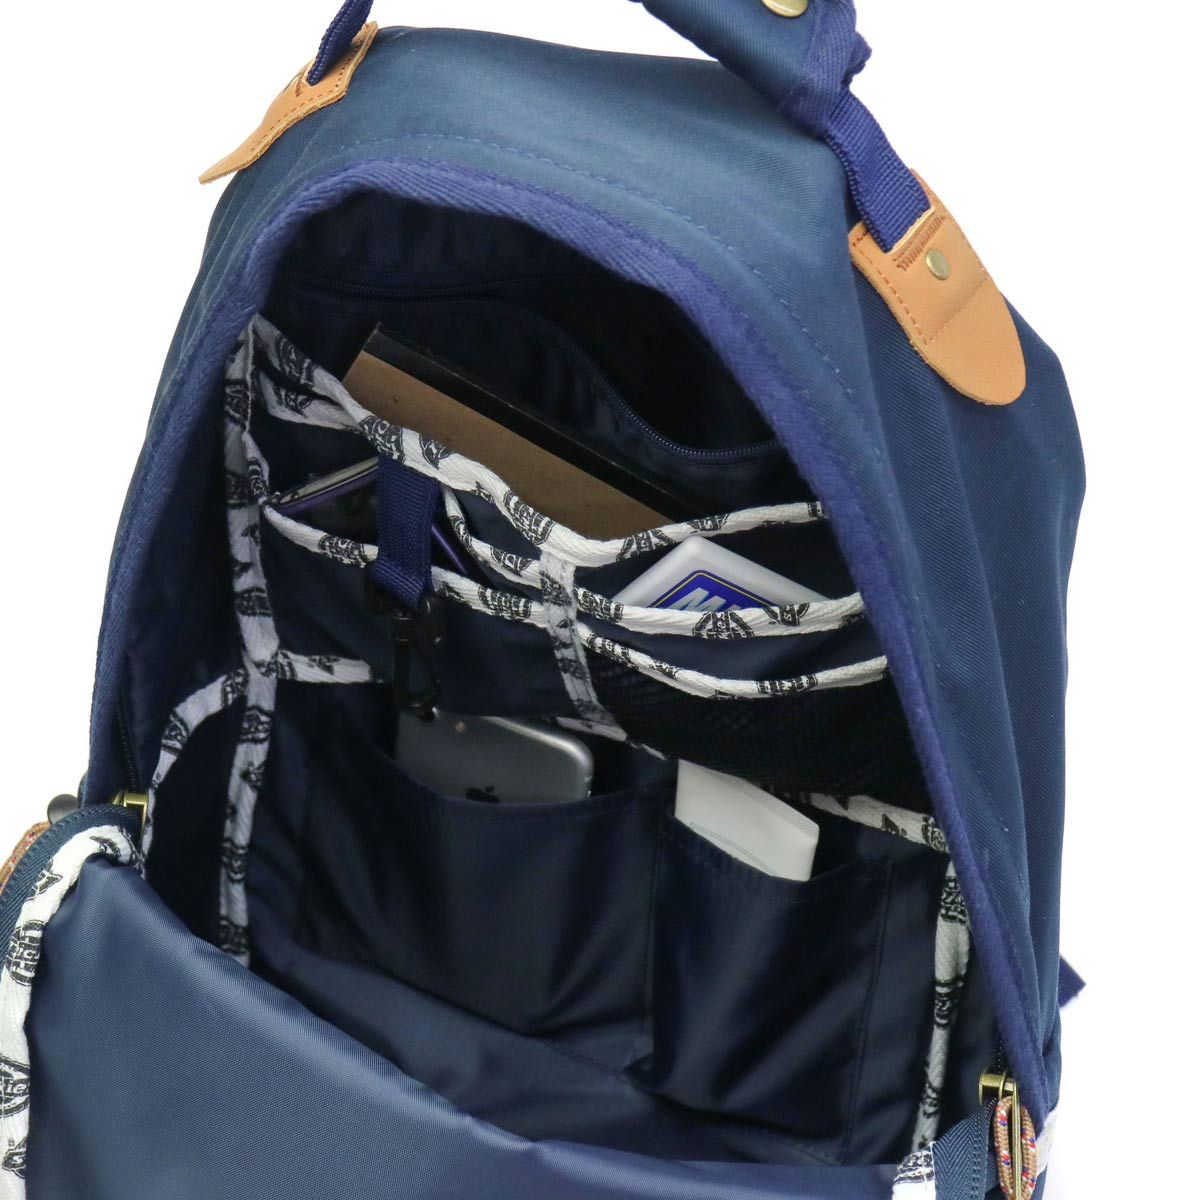 a6c43694aa2c ディッキーズ バッグ Dickies リュック CLASSIC WORKERS DAYPACK メンズ ...